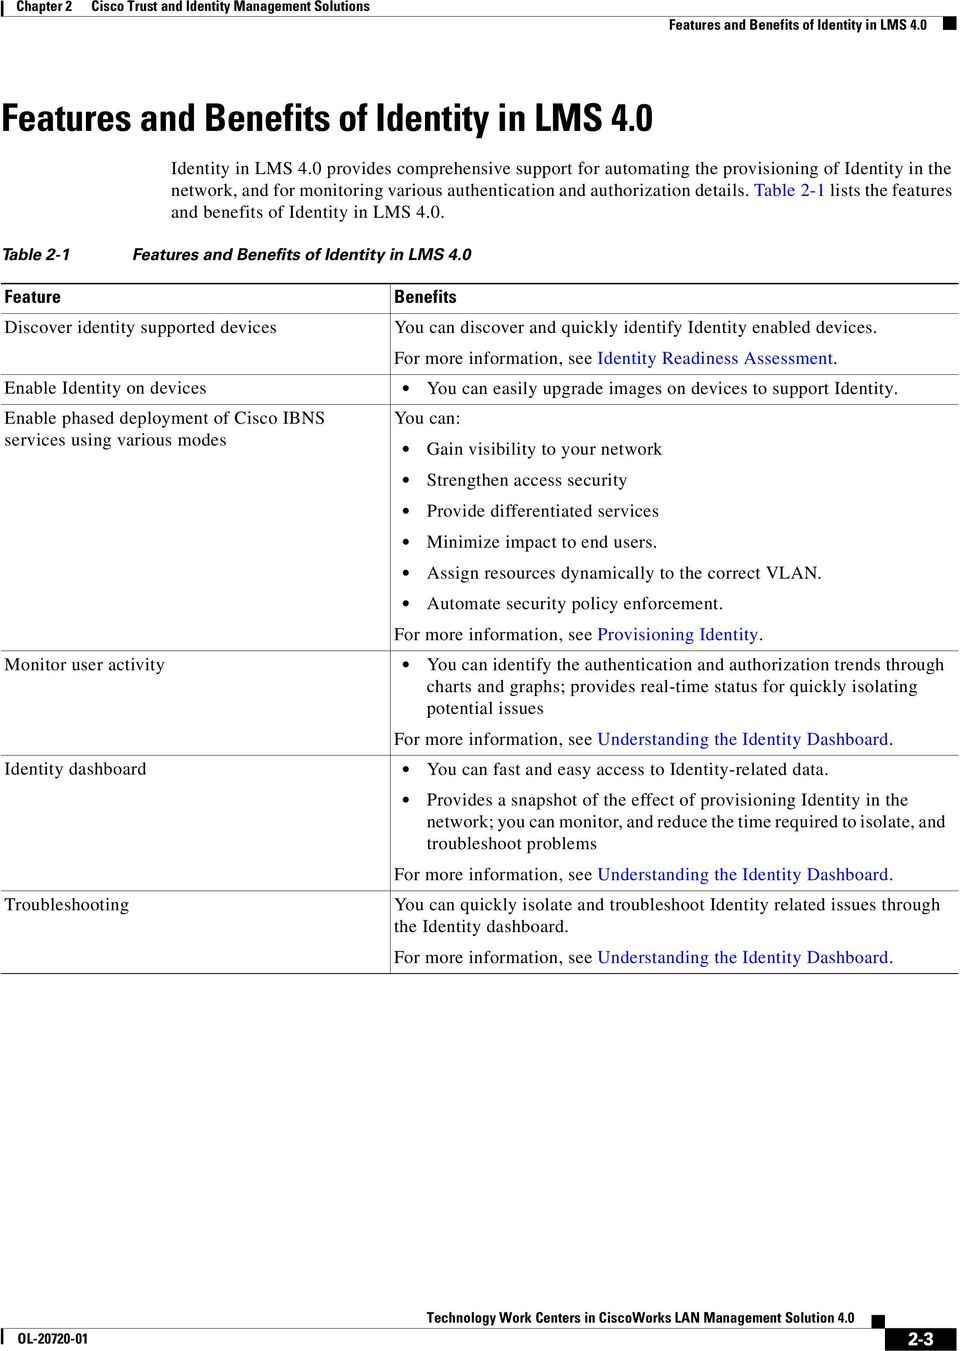 Table 2-1 lists the features and benefits of Identity in LMS 4.0. Table 2-1 Features and Benefits of Identity in LMS 4.